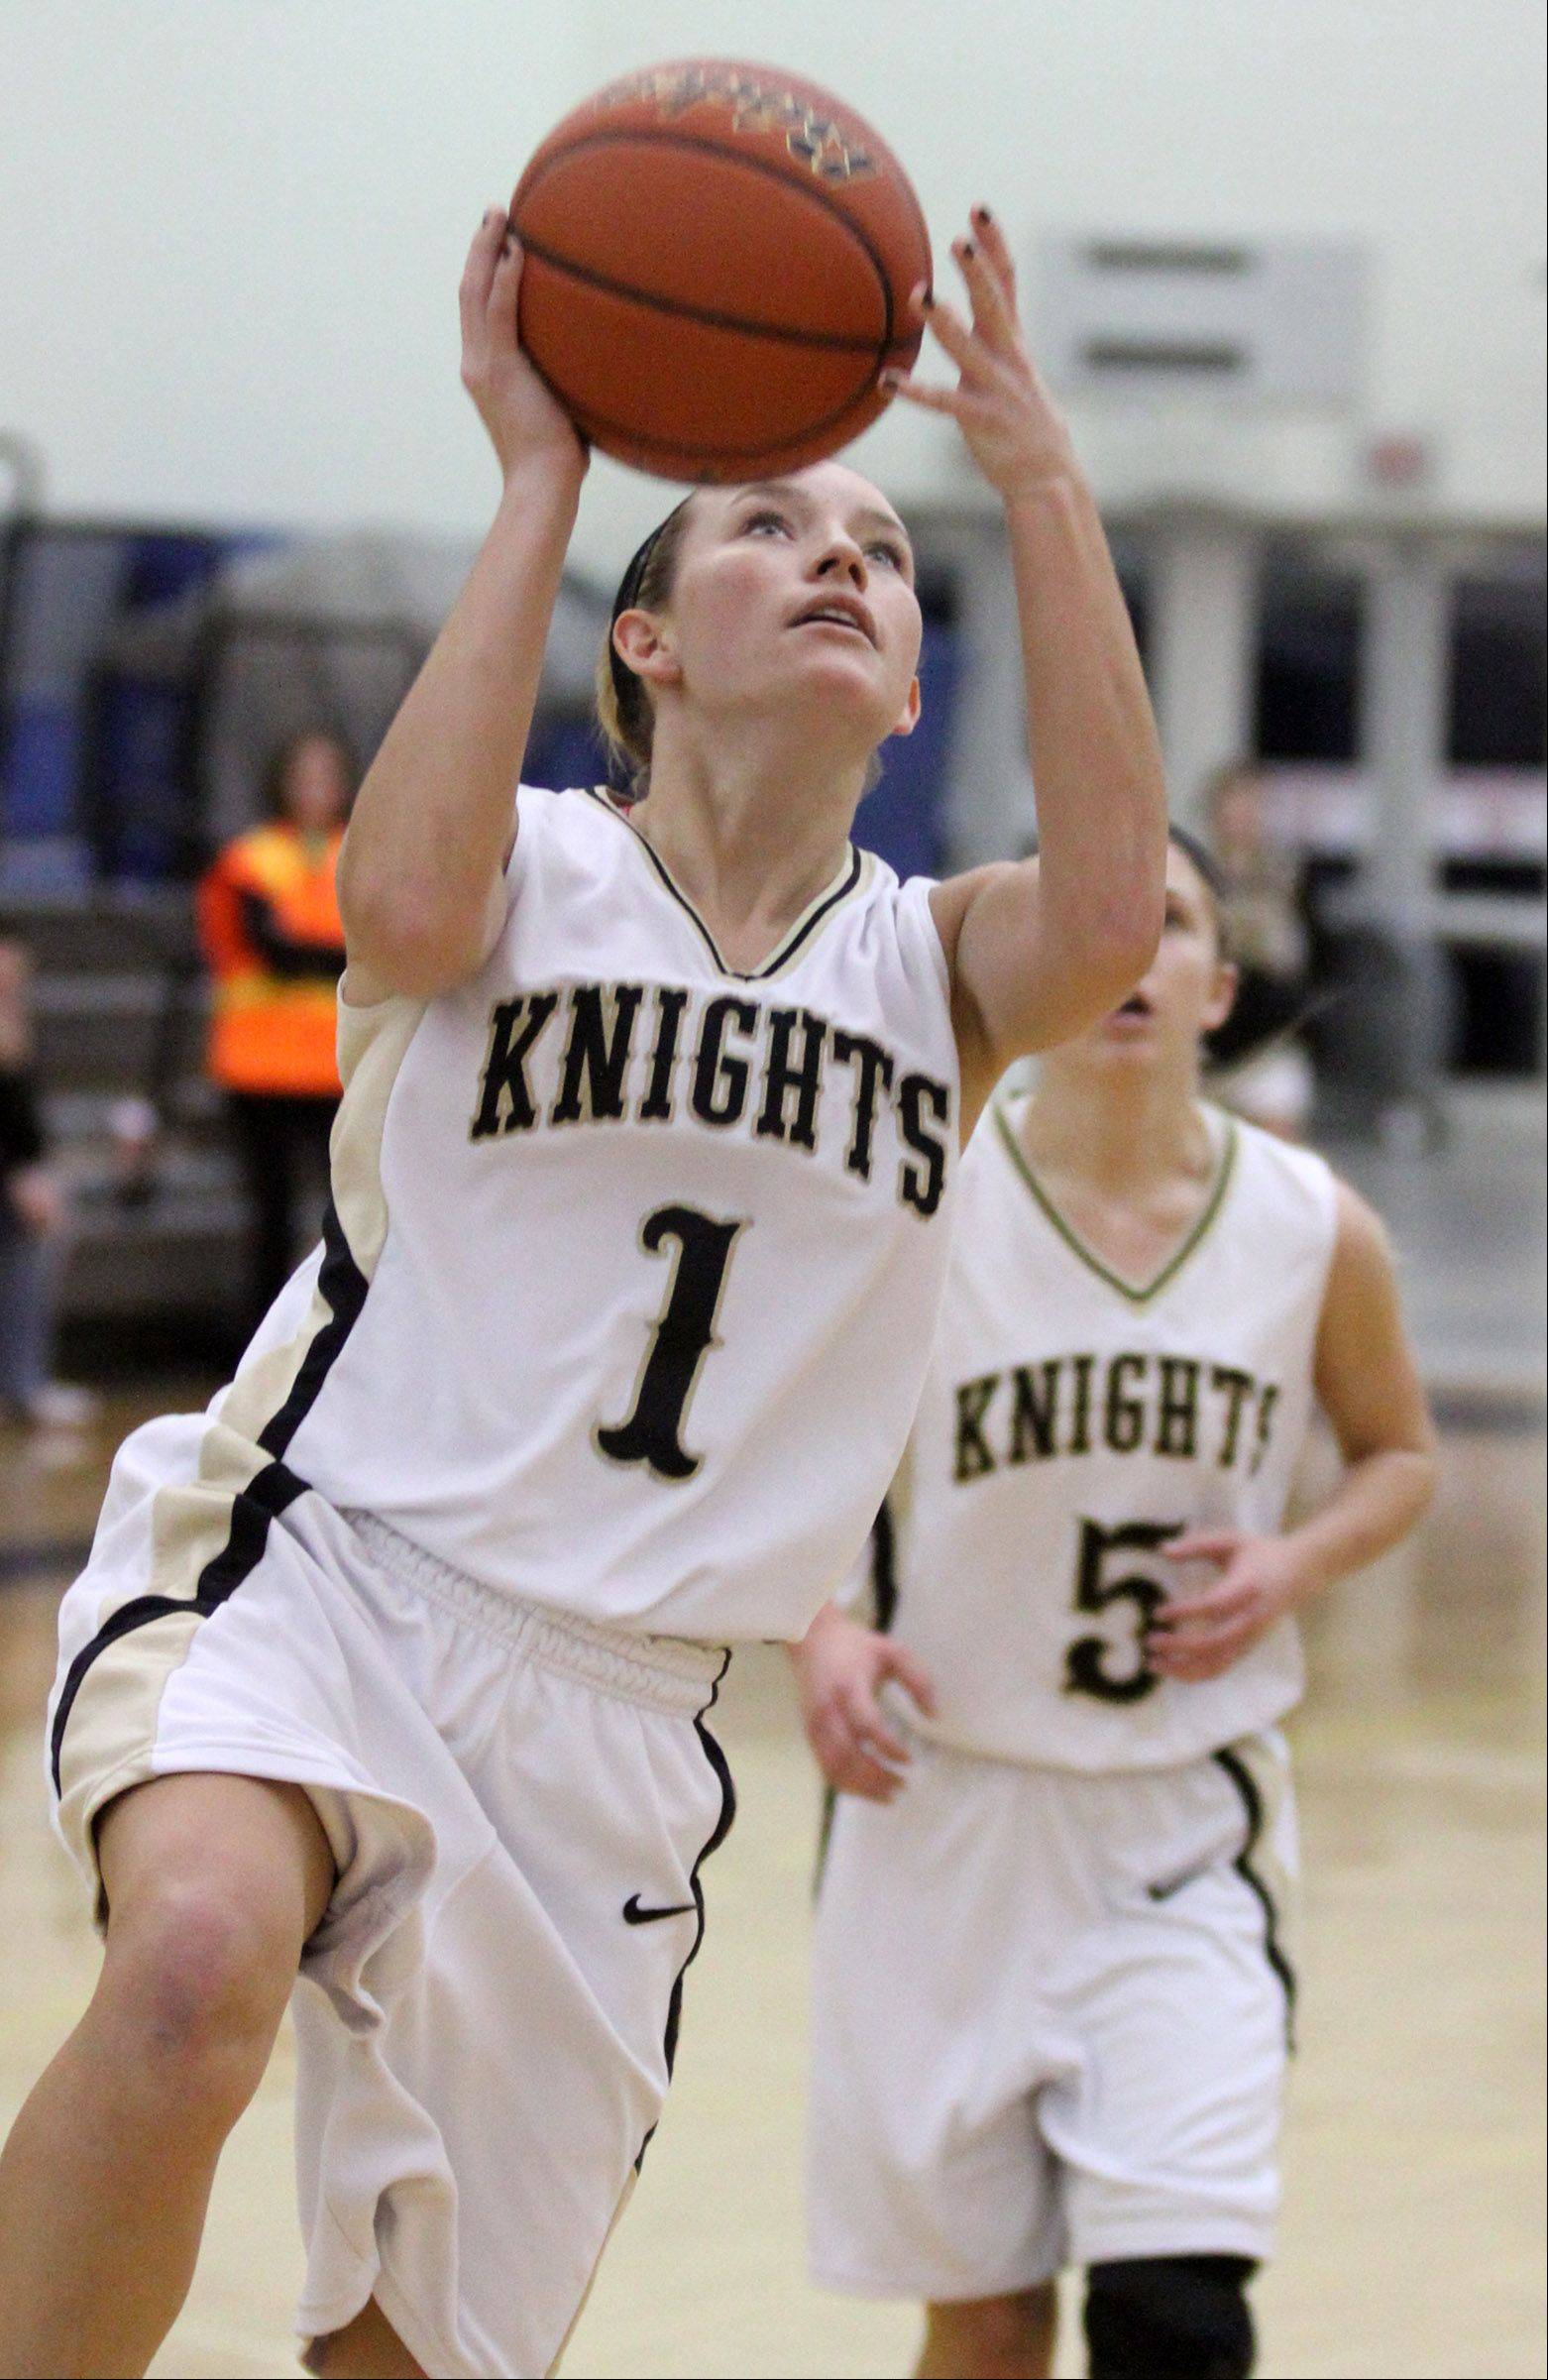 Grayslake North's Jordyn Bowen shoots a breakaway layup against Woodstock in Grayslake on Friday.